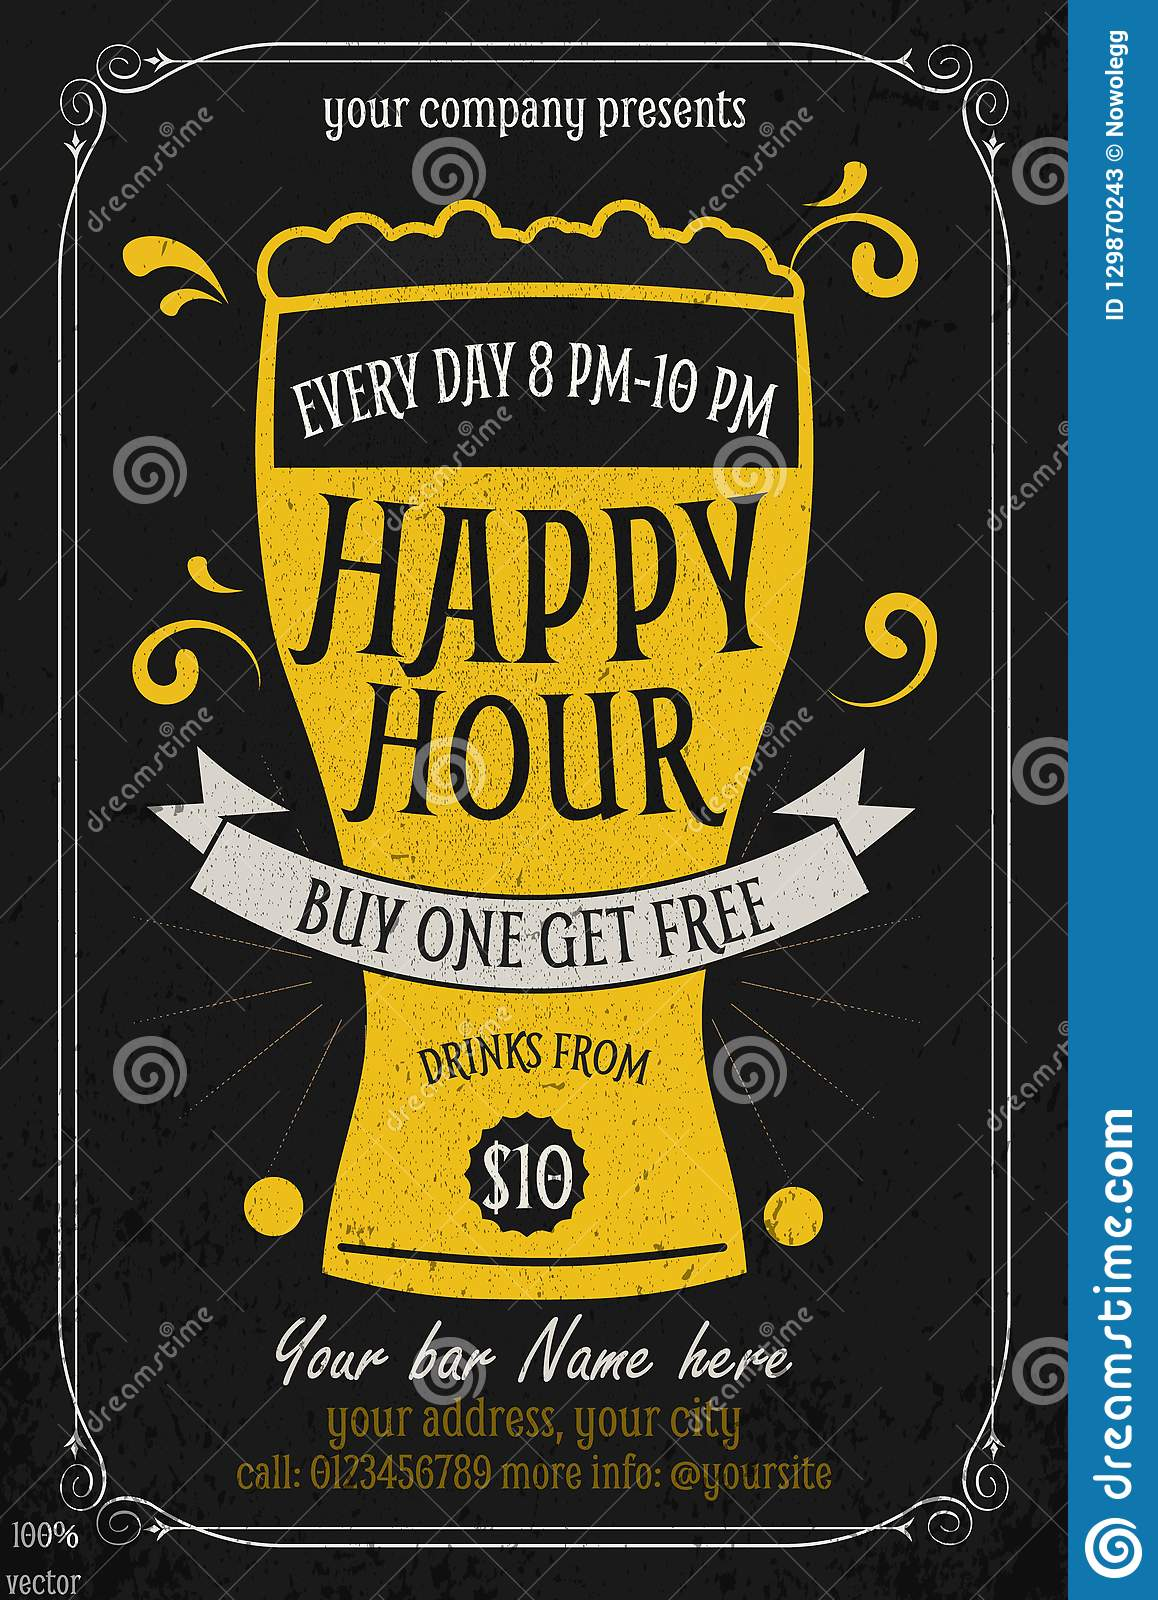 Happy Hour Free Beer Vintage Illustration Template Stock Vector